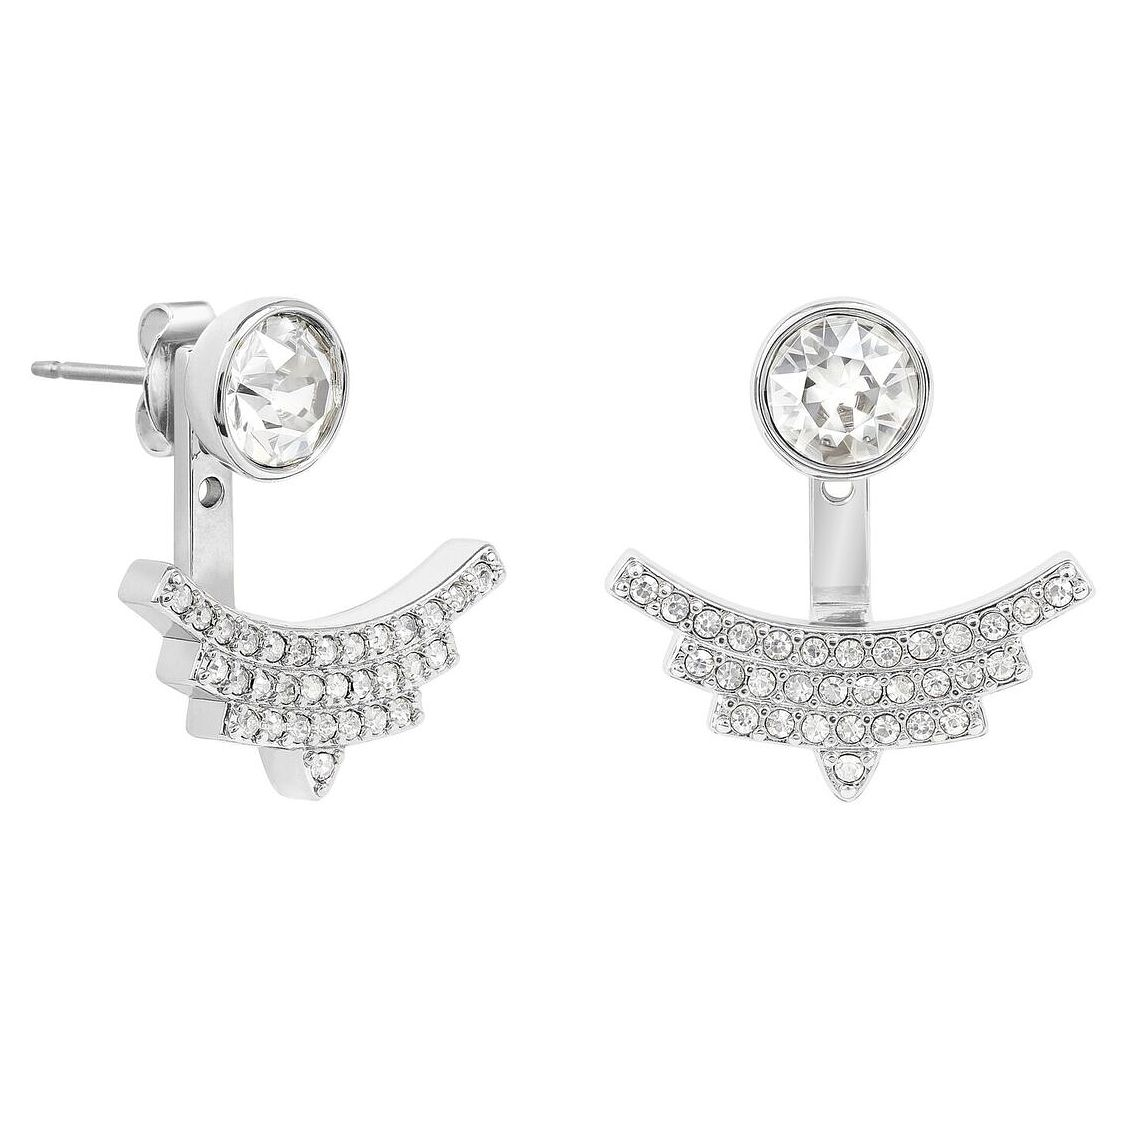 Adore Ladies' Rhodium Plated Pave Arc Jacket Earrings - Product number 8919534